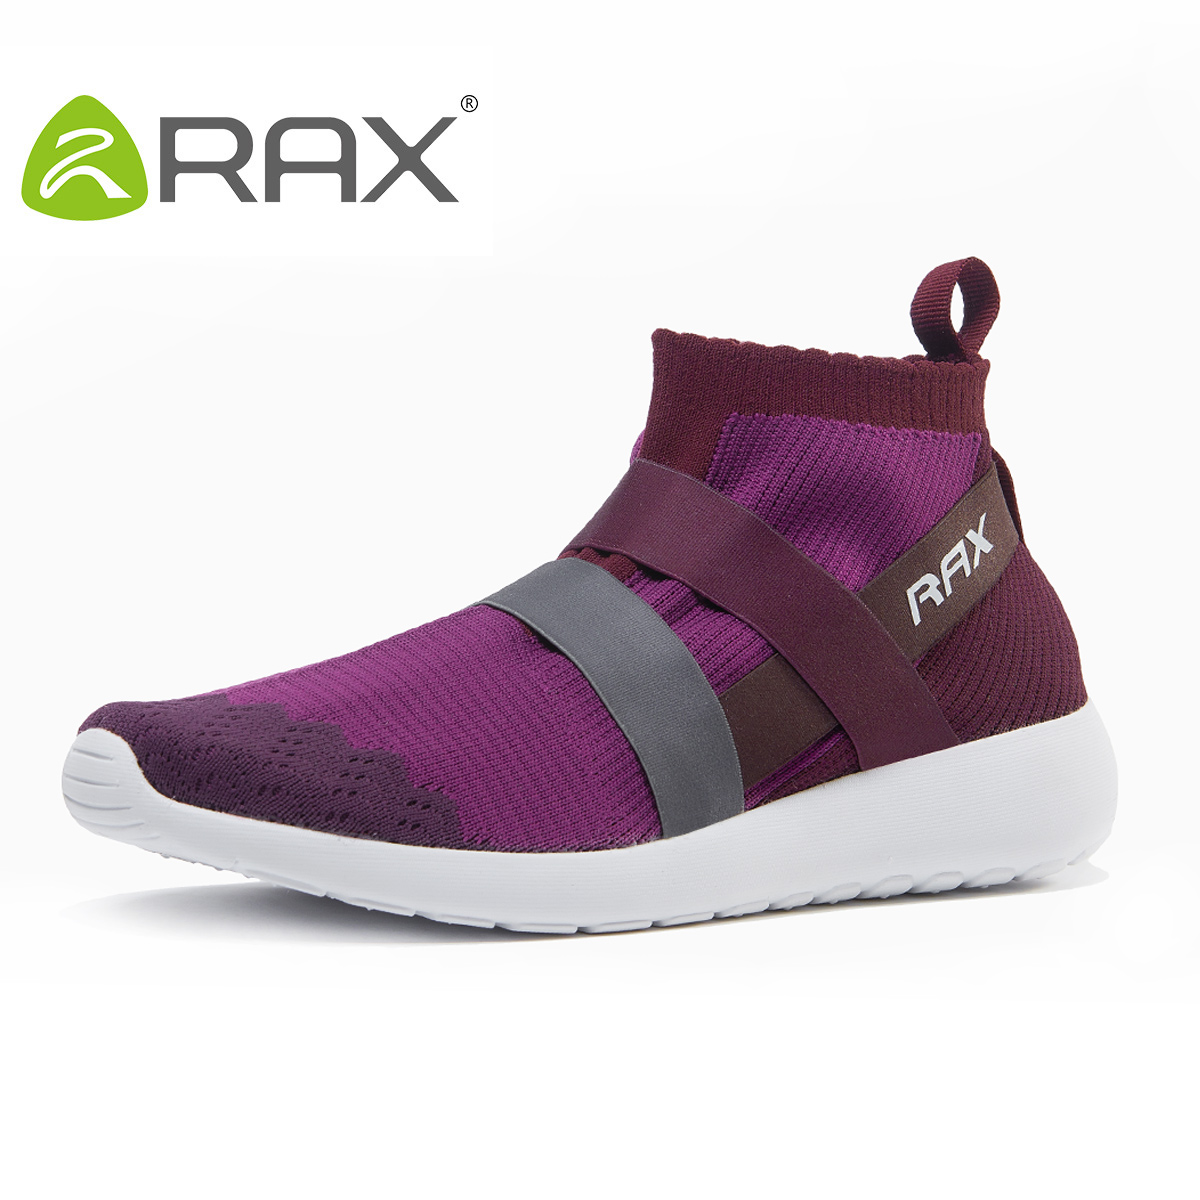 Rax Running Shoes For Women Lighweight Mesh Running Boots Female Breathable Sports Zapatillas Mujer B2818W